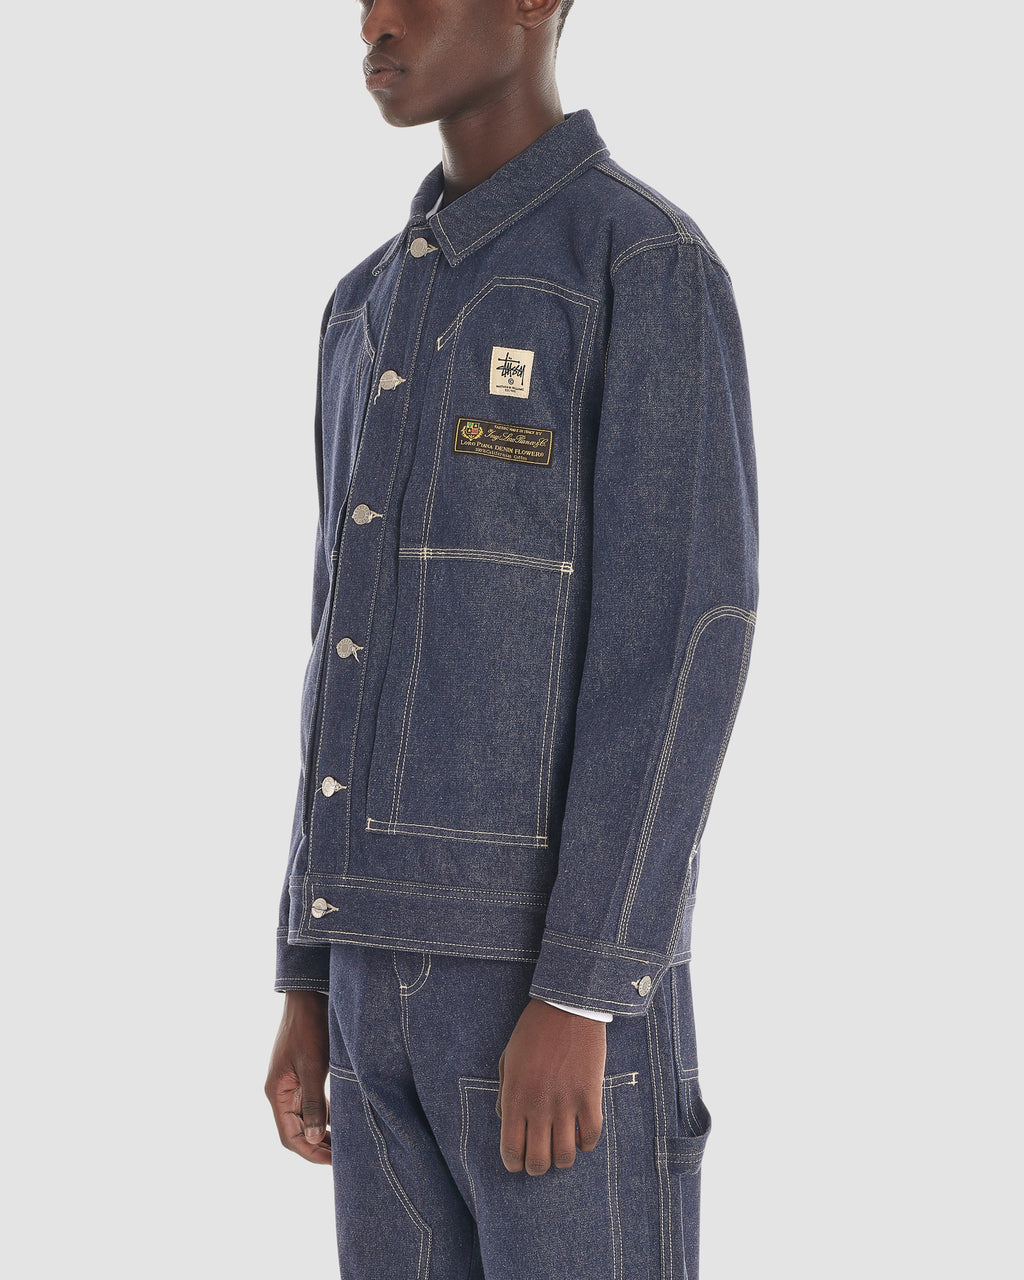 STÜSSY DENIM JACKET